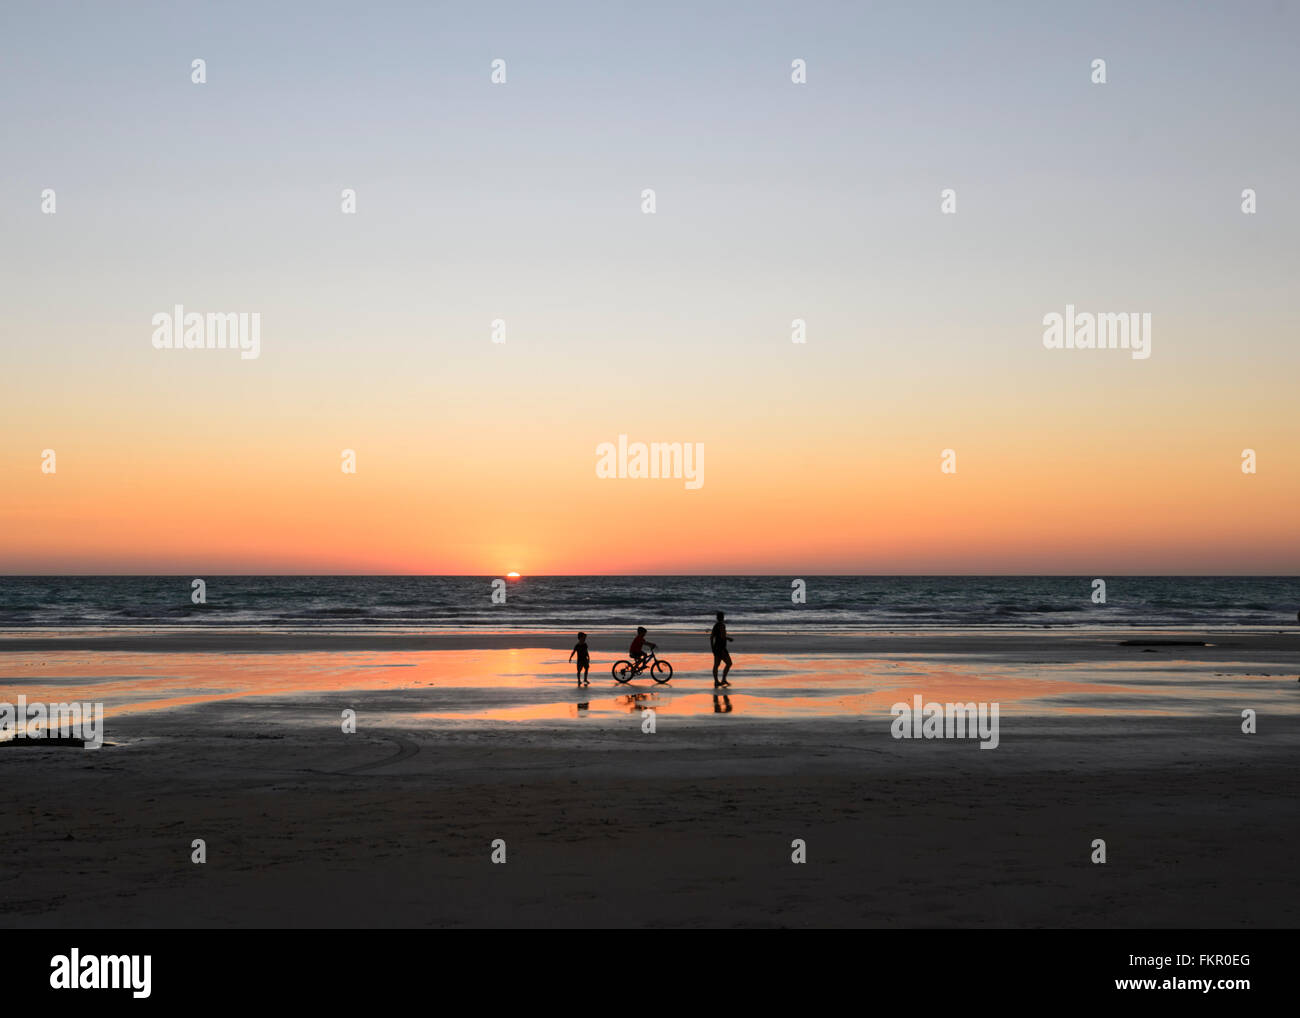 Au coucher du soleil sur la famille de Cable Beach, Broome, région de Kimberley, en Australie occidentale, Photo Stock